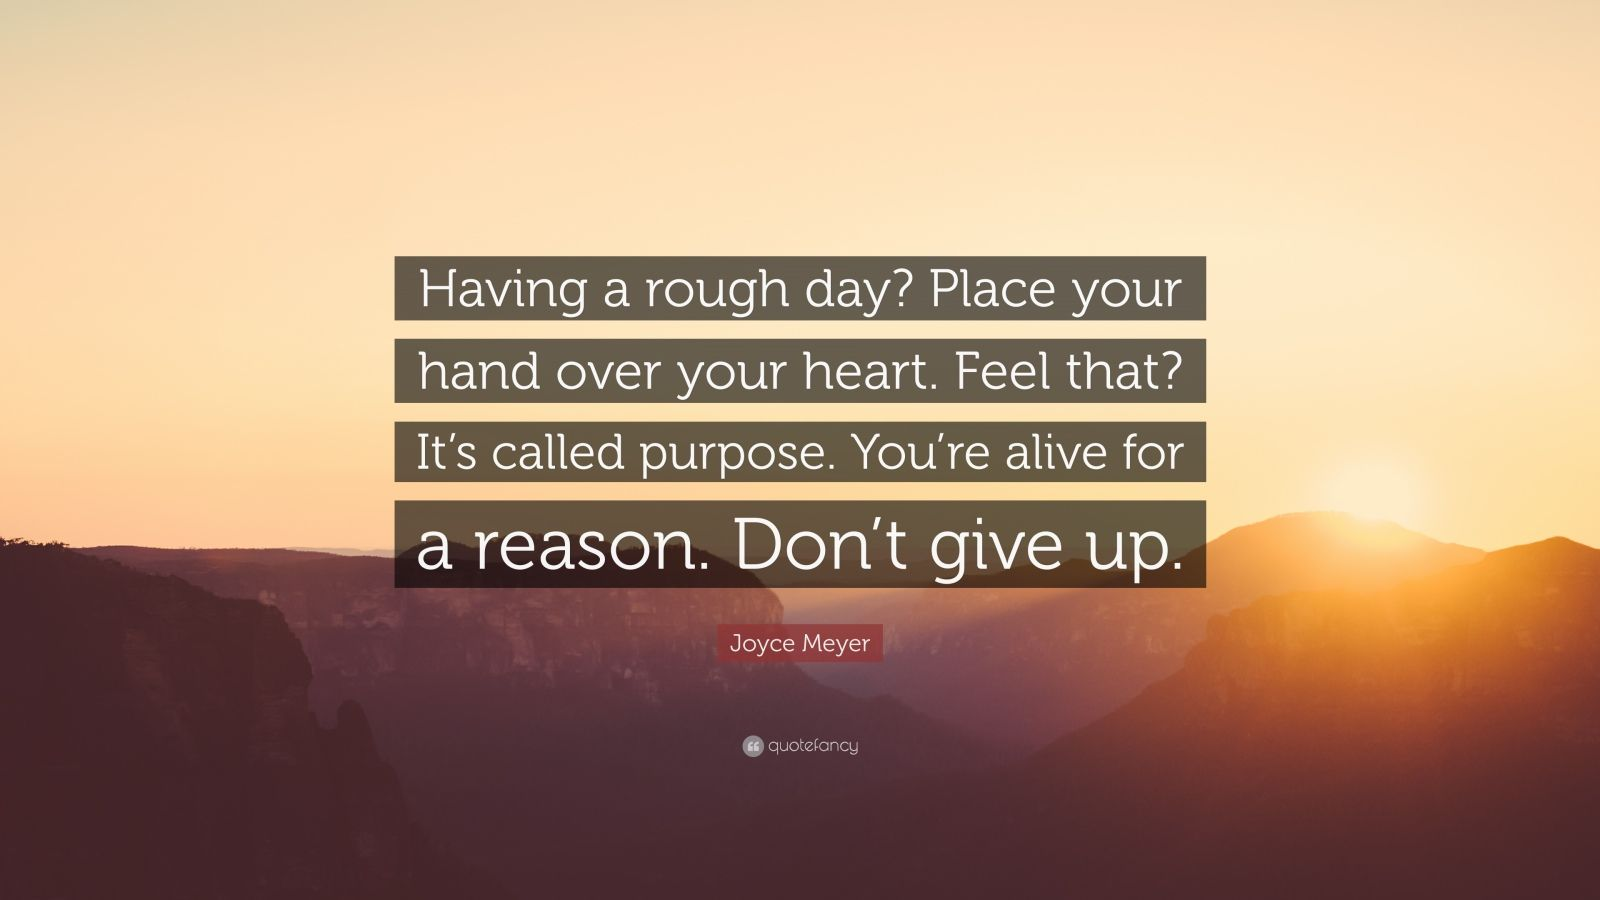 "Quotes About Heart: ""Having a rough day? Place your hand over your heart. Feel that? It's called purpose. You're alive for a reason. Don't give up."" — Joyce Meyer"